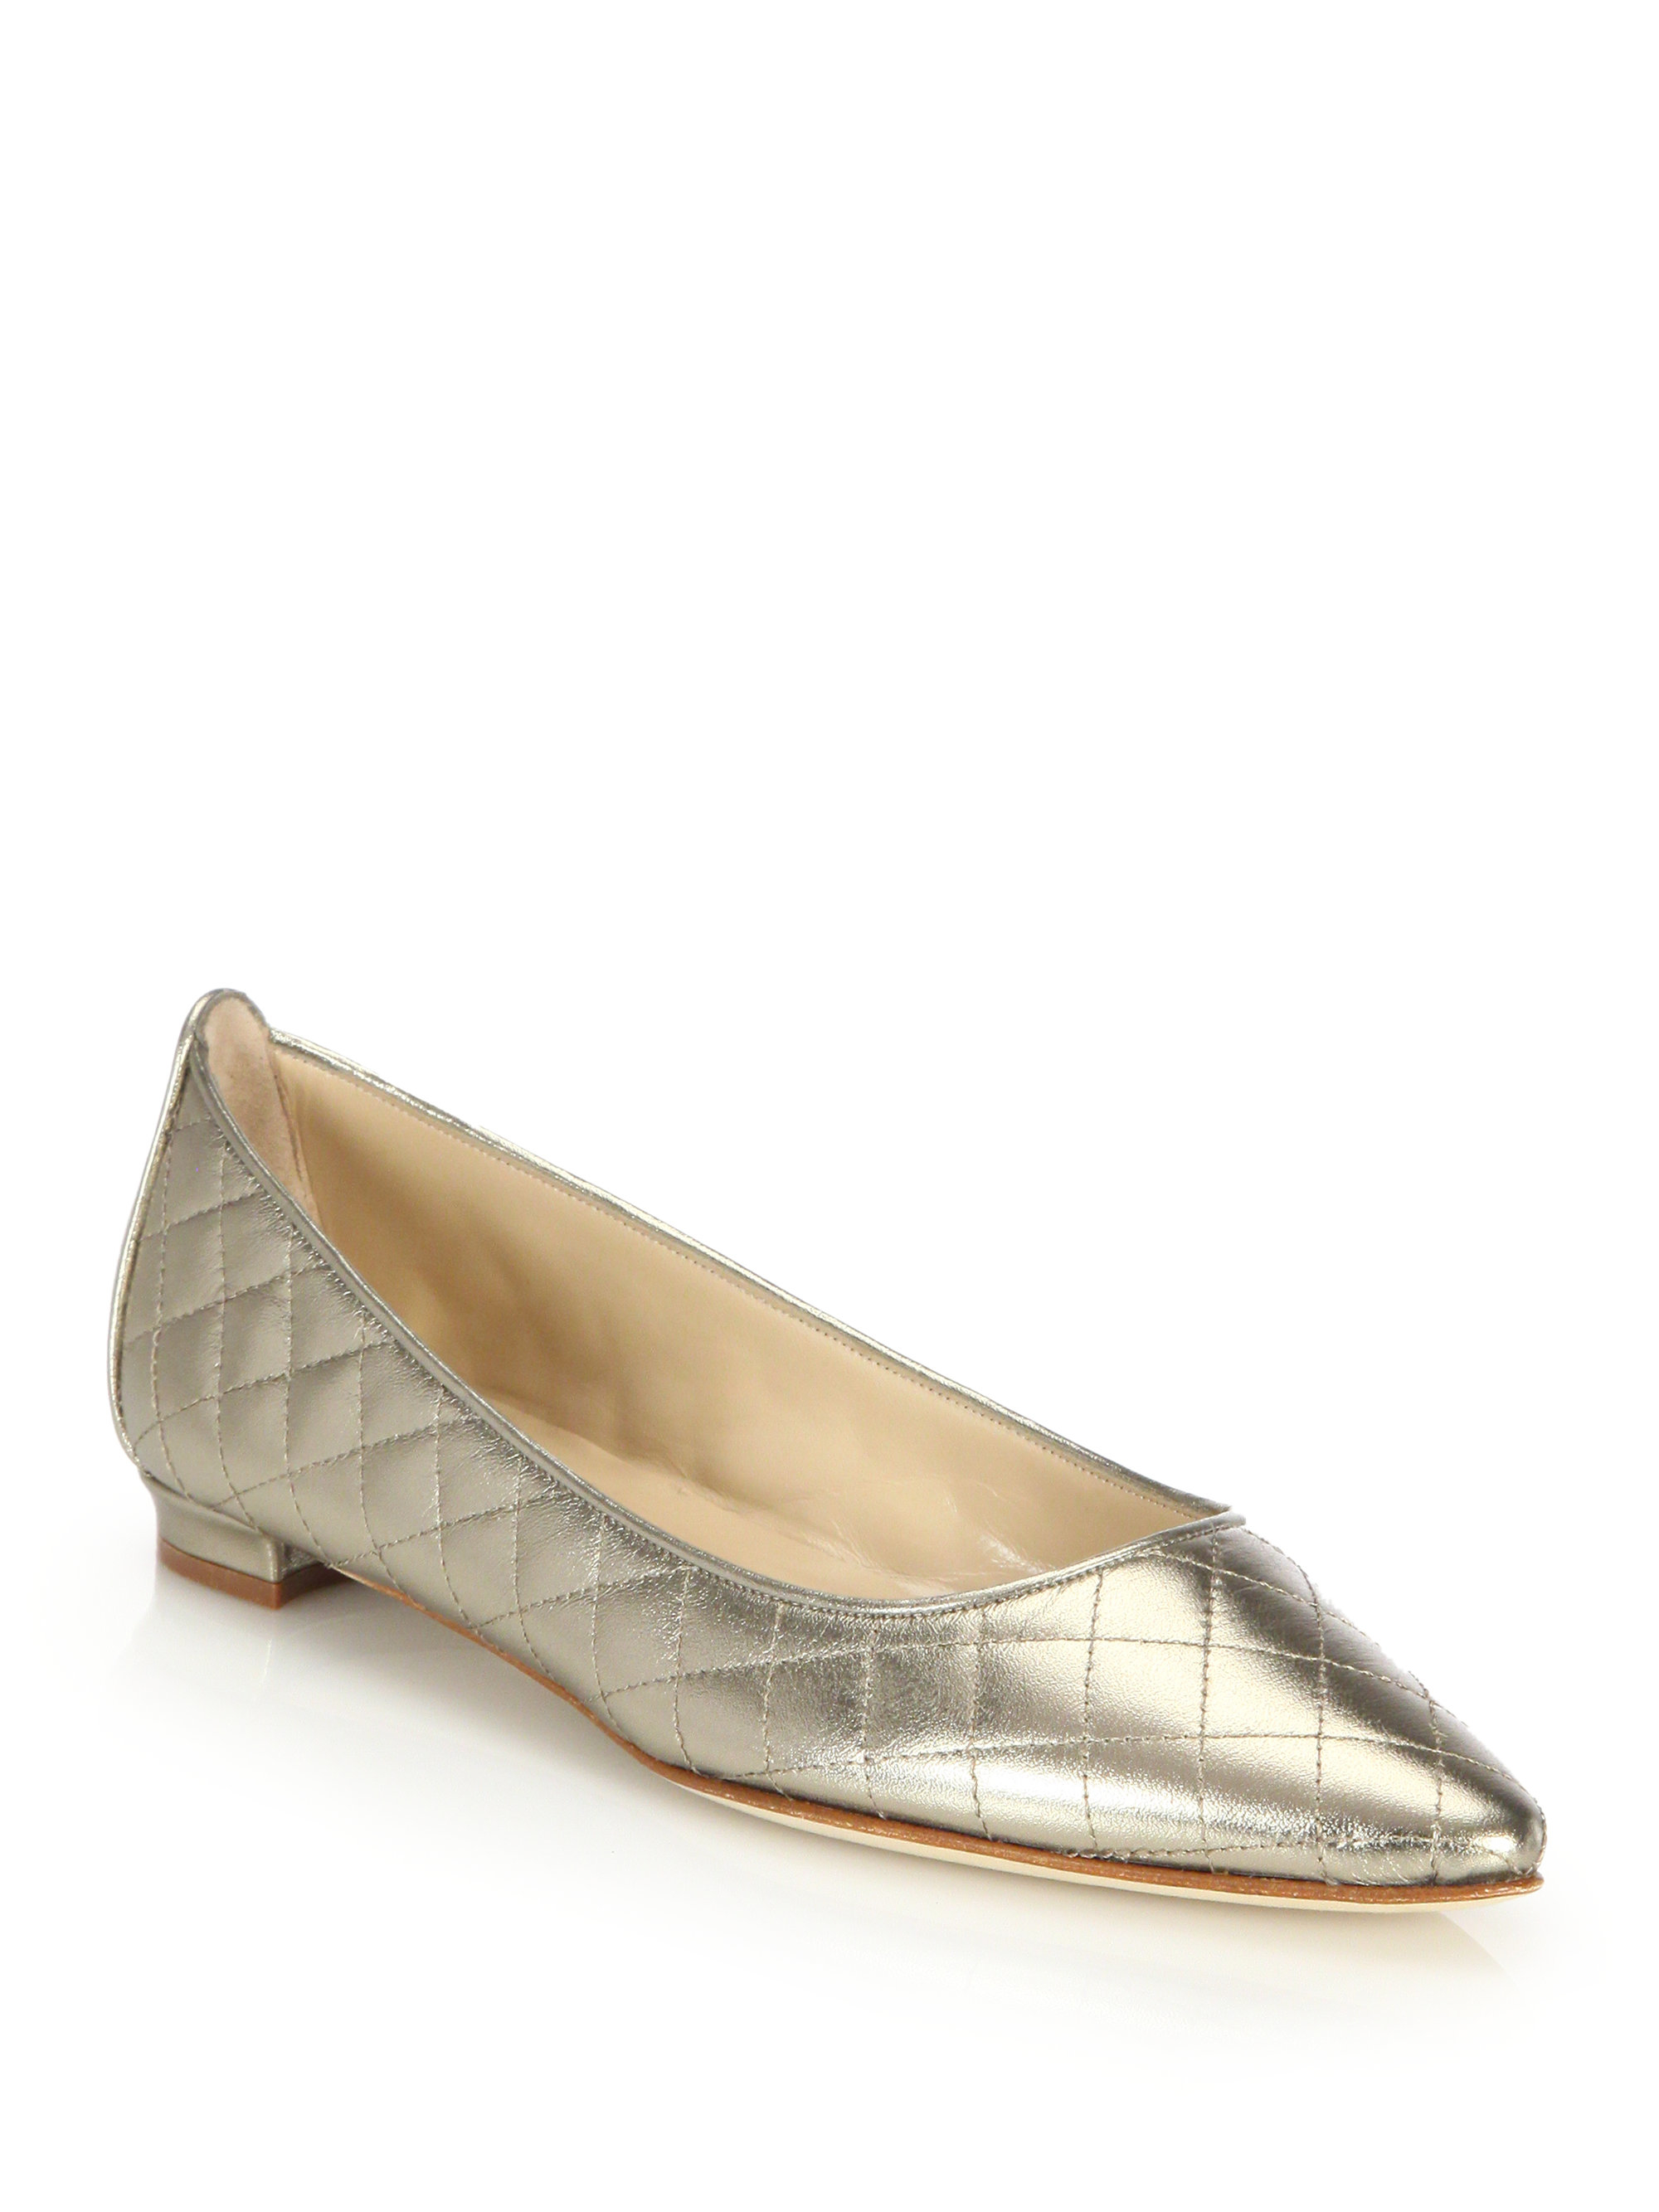 Manolo Blahnik Abat Quilted Leather Ballet Flats In Beige